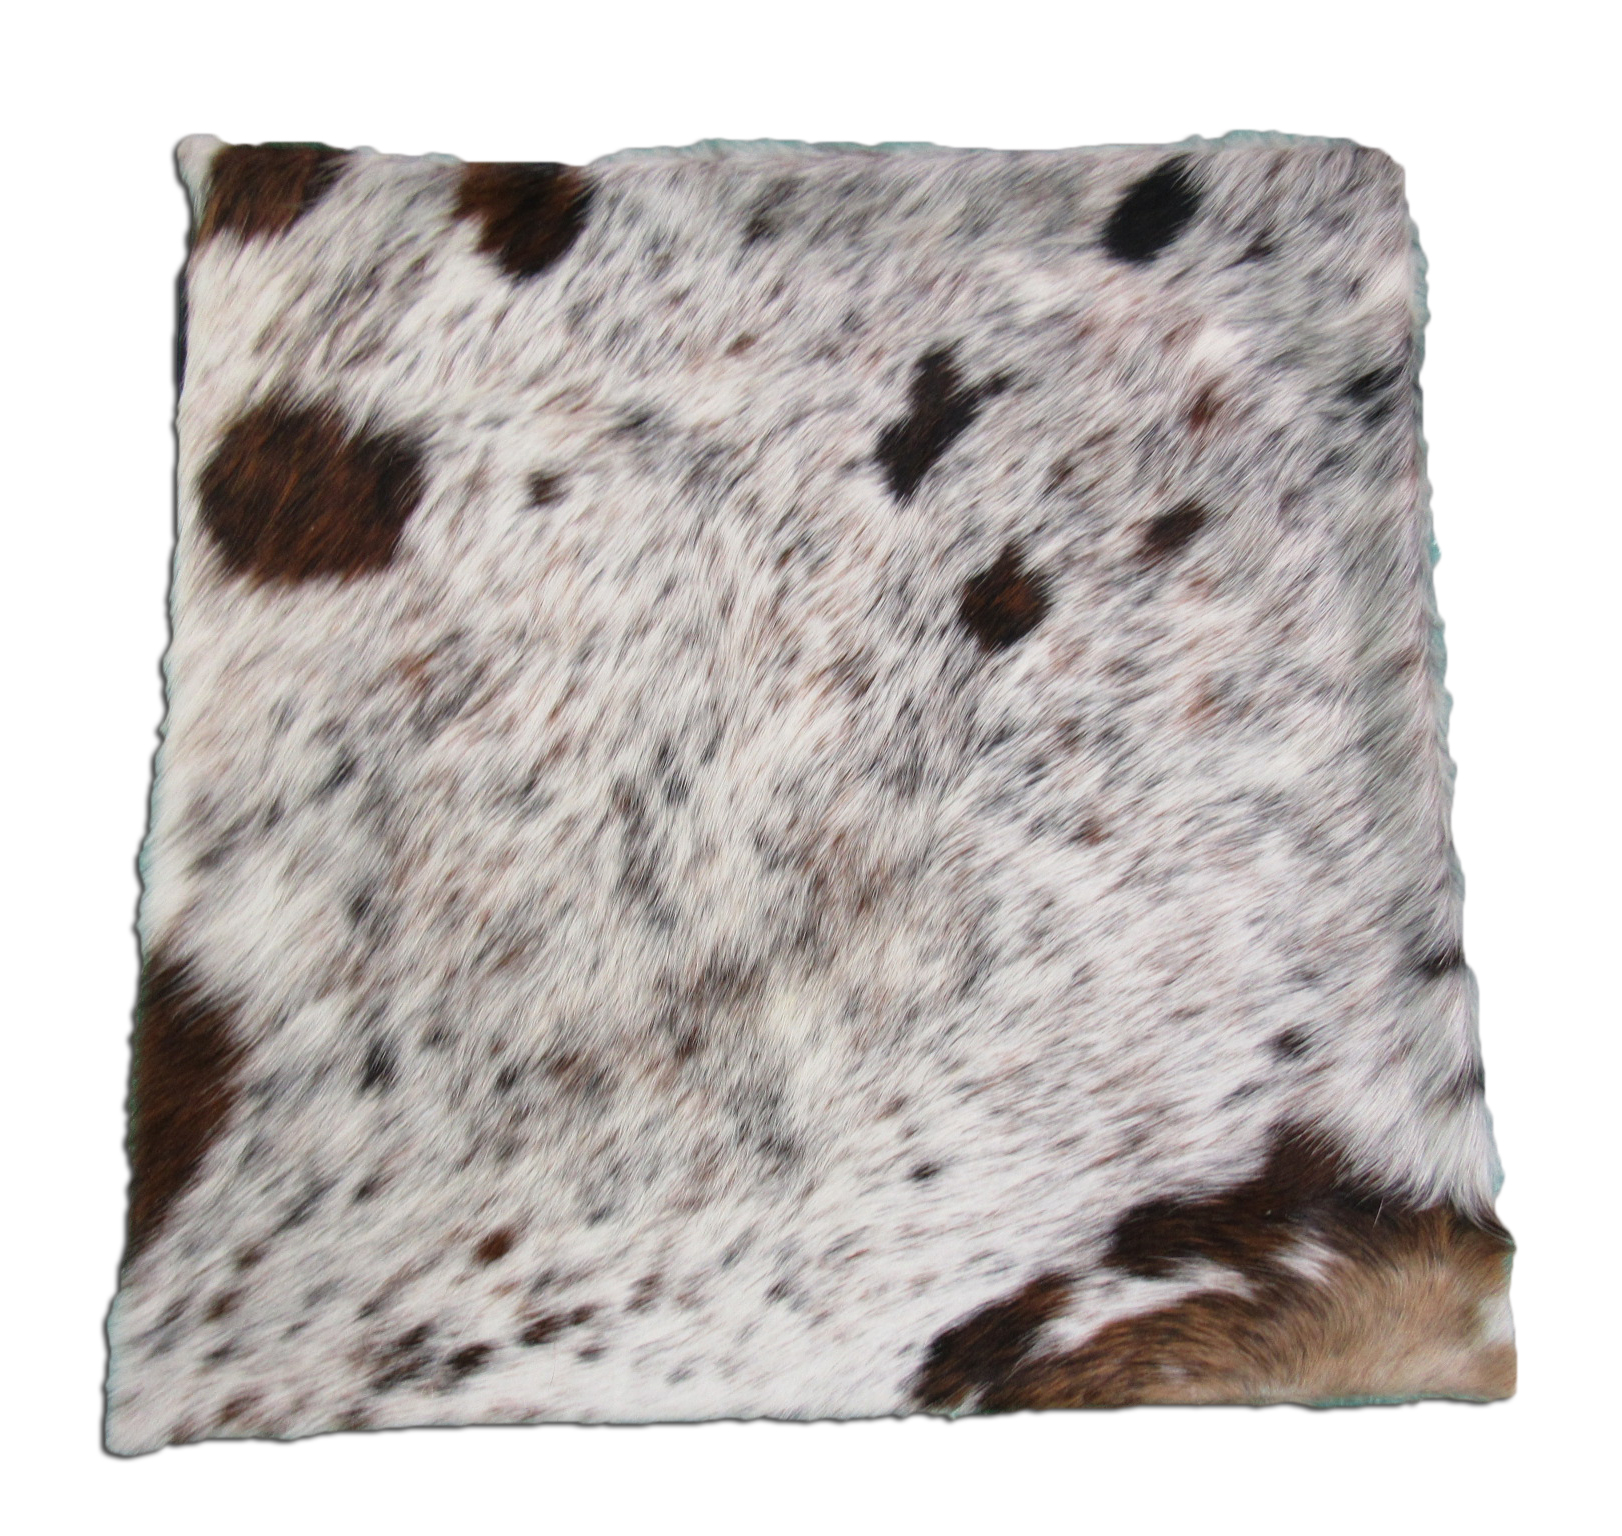 A-1071 Salt and Pepper Cowhide Pillow Cover - Size: 18 in x 18 in